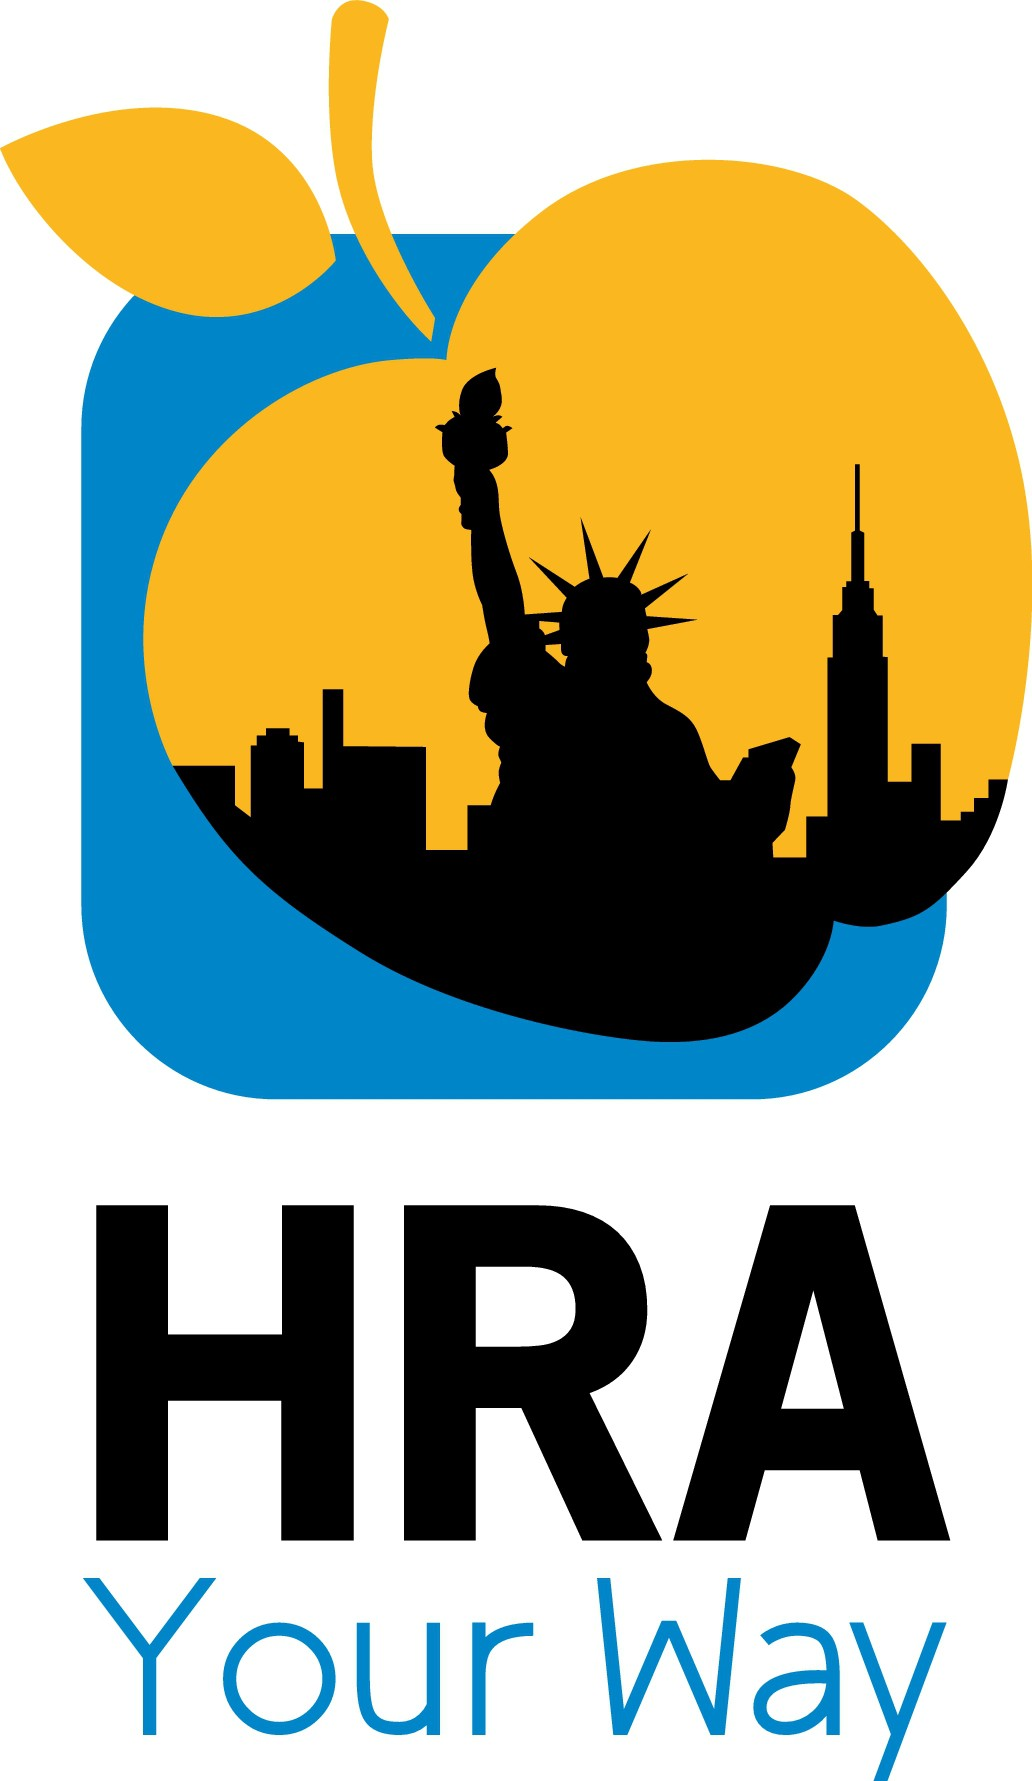 NYC HRA Your Way - Modernizing NYC Benefit Delivery